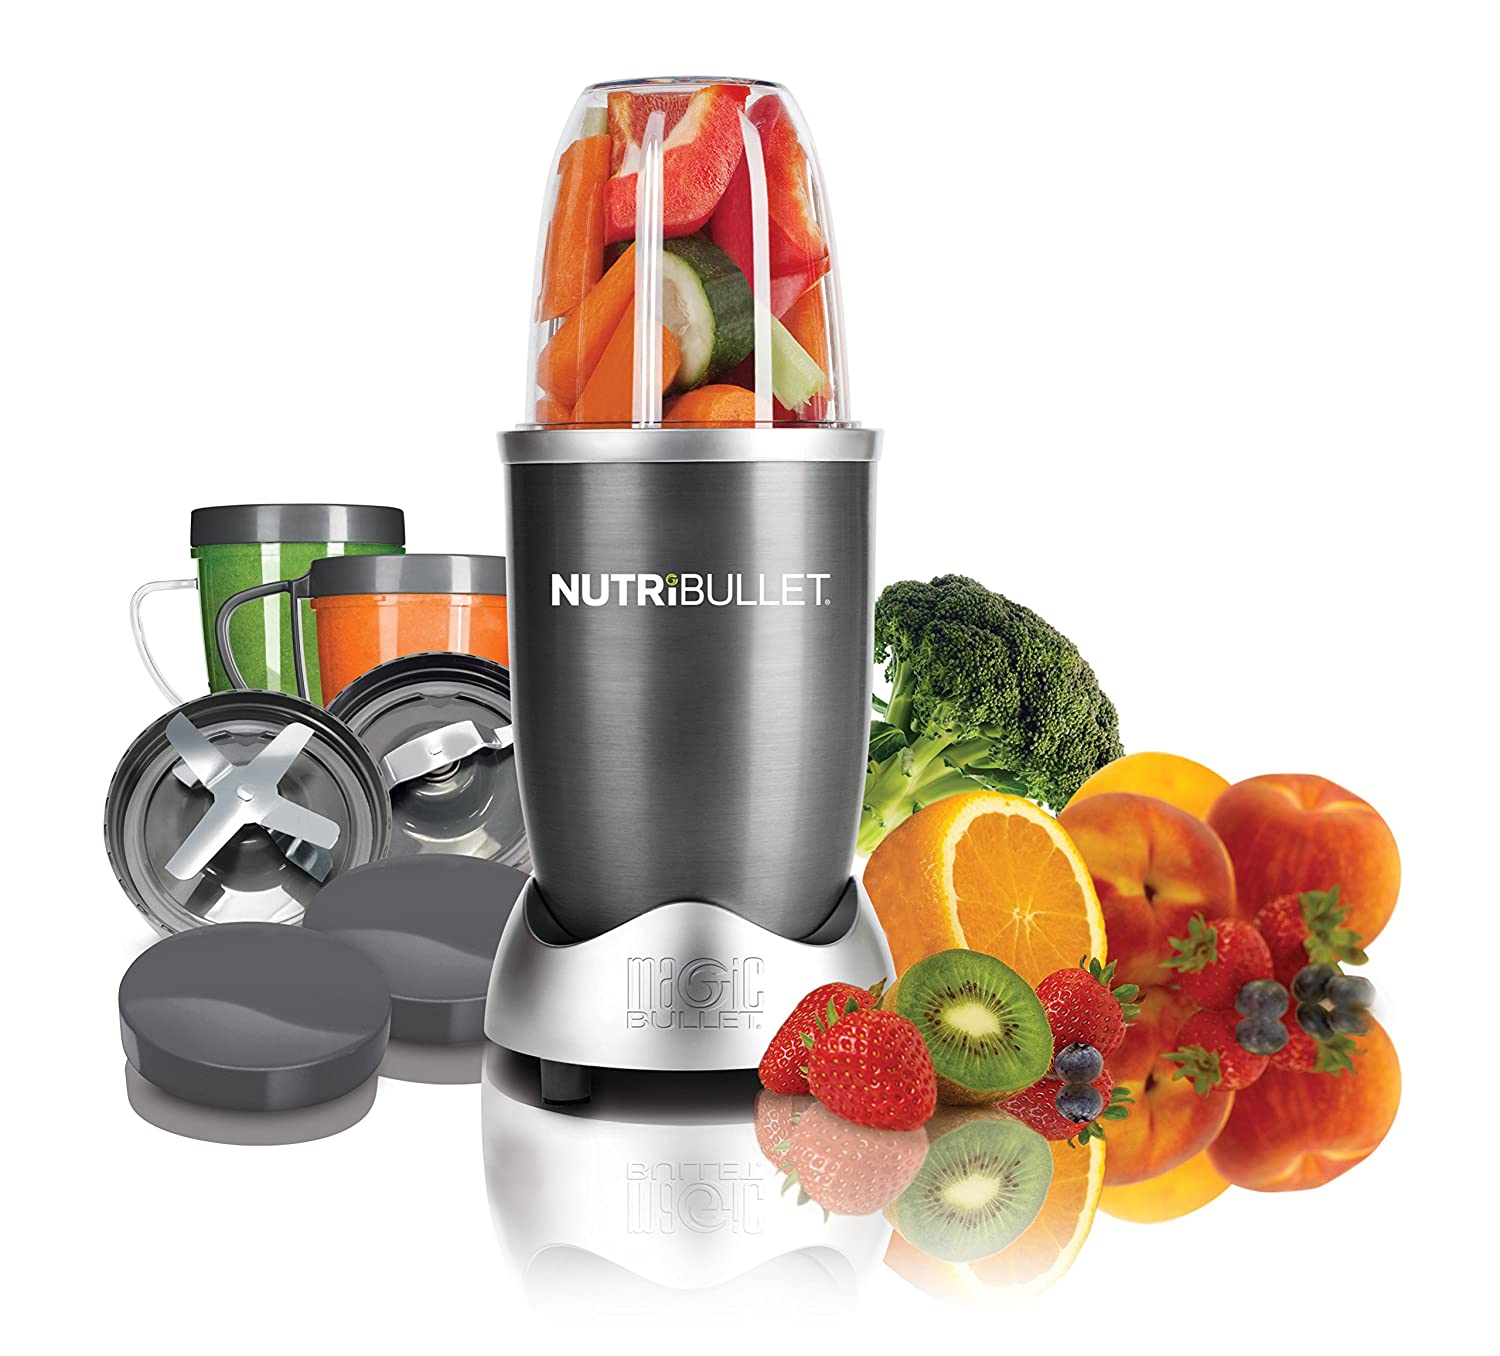 NutriBullet Review 2018